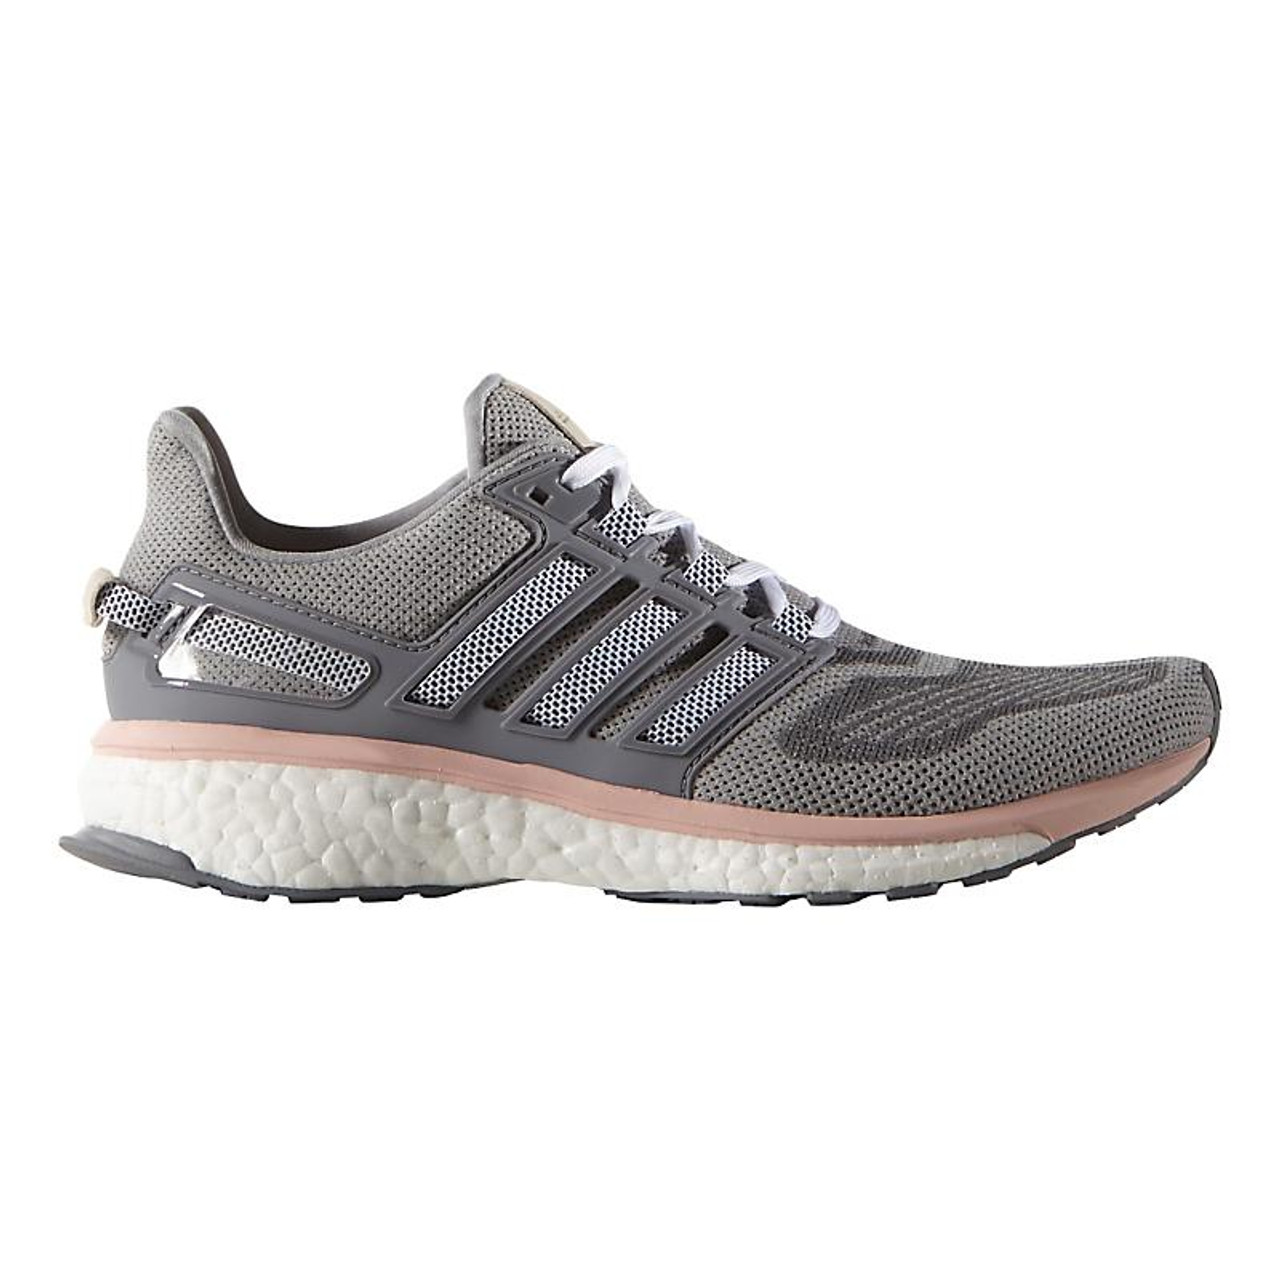 official supplier a few days away factory outlet Women's adidas Energy Boost 3